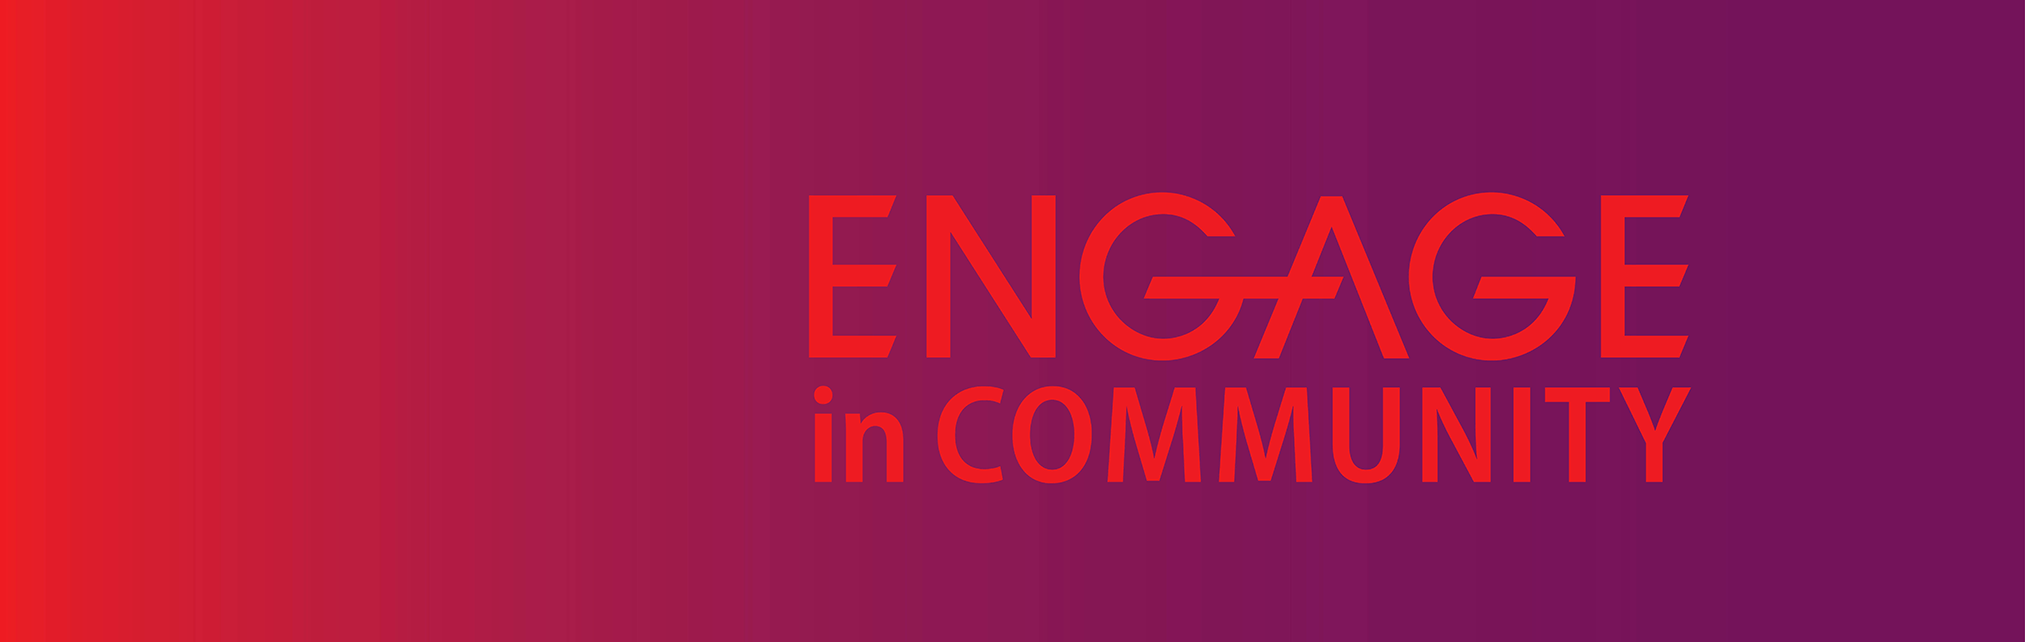 ENGAGE in Community 2020 logo for Convocation